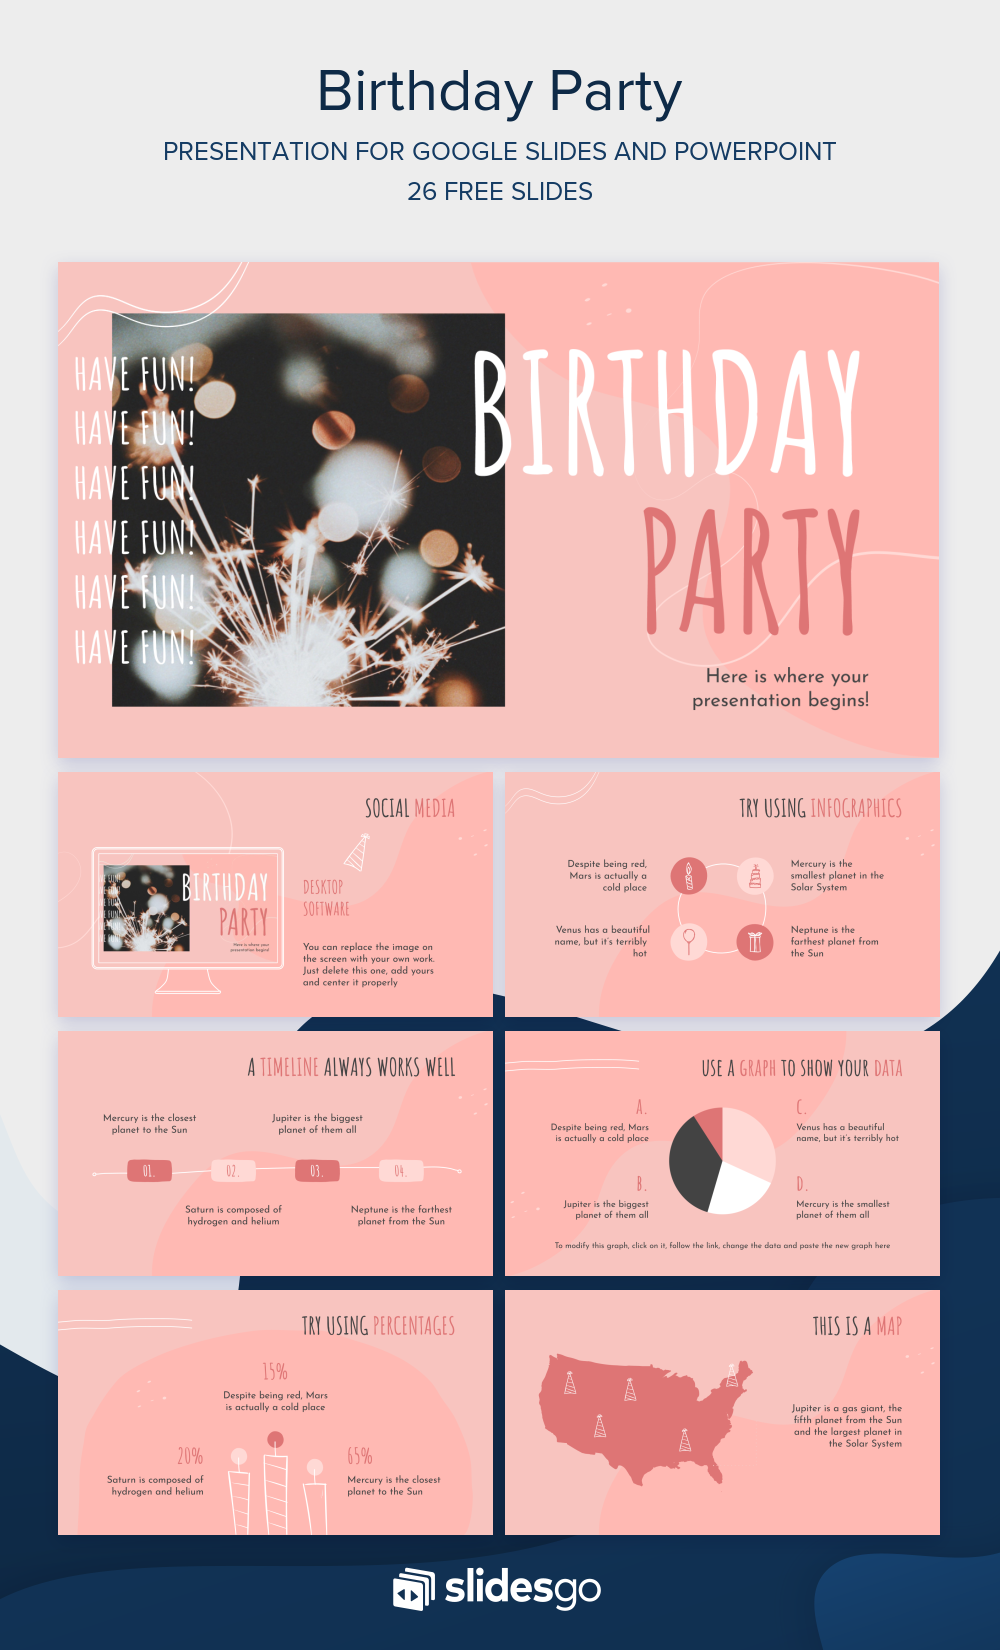 Organize A Great Birthday Party With This Creative Presentation Download It As A Google Slides T Powerpoint Free Powerpoint Presentations Google Slides Themes